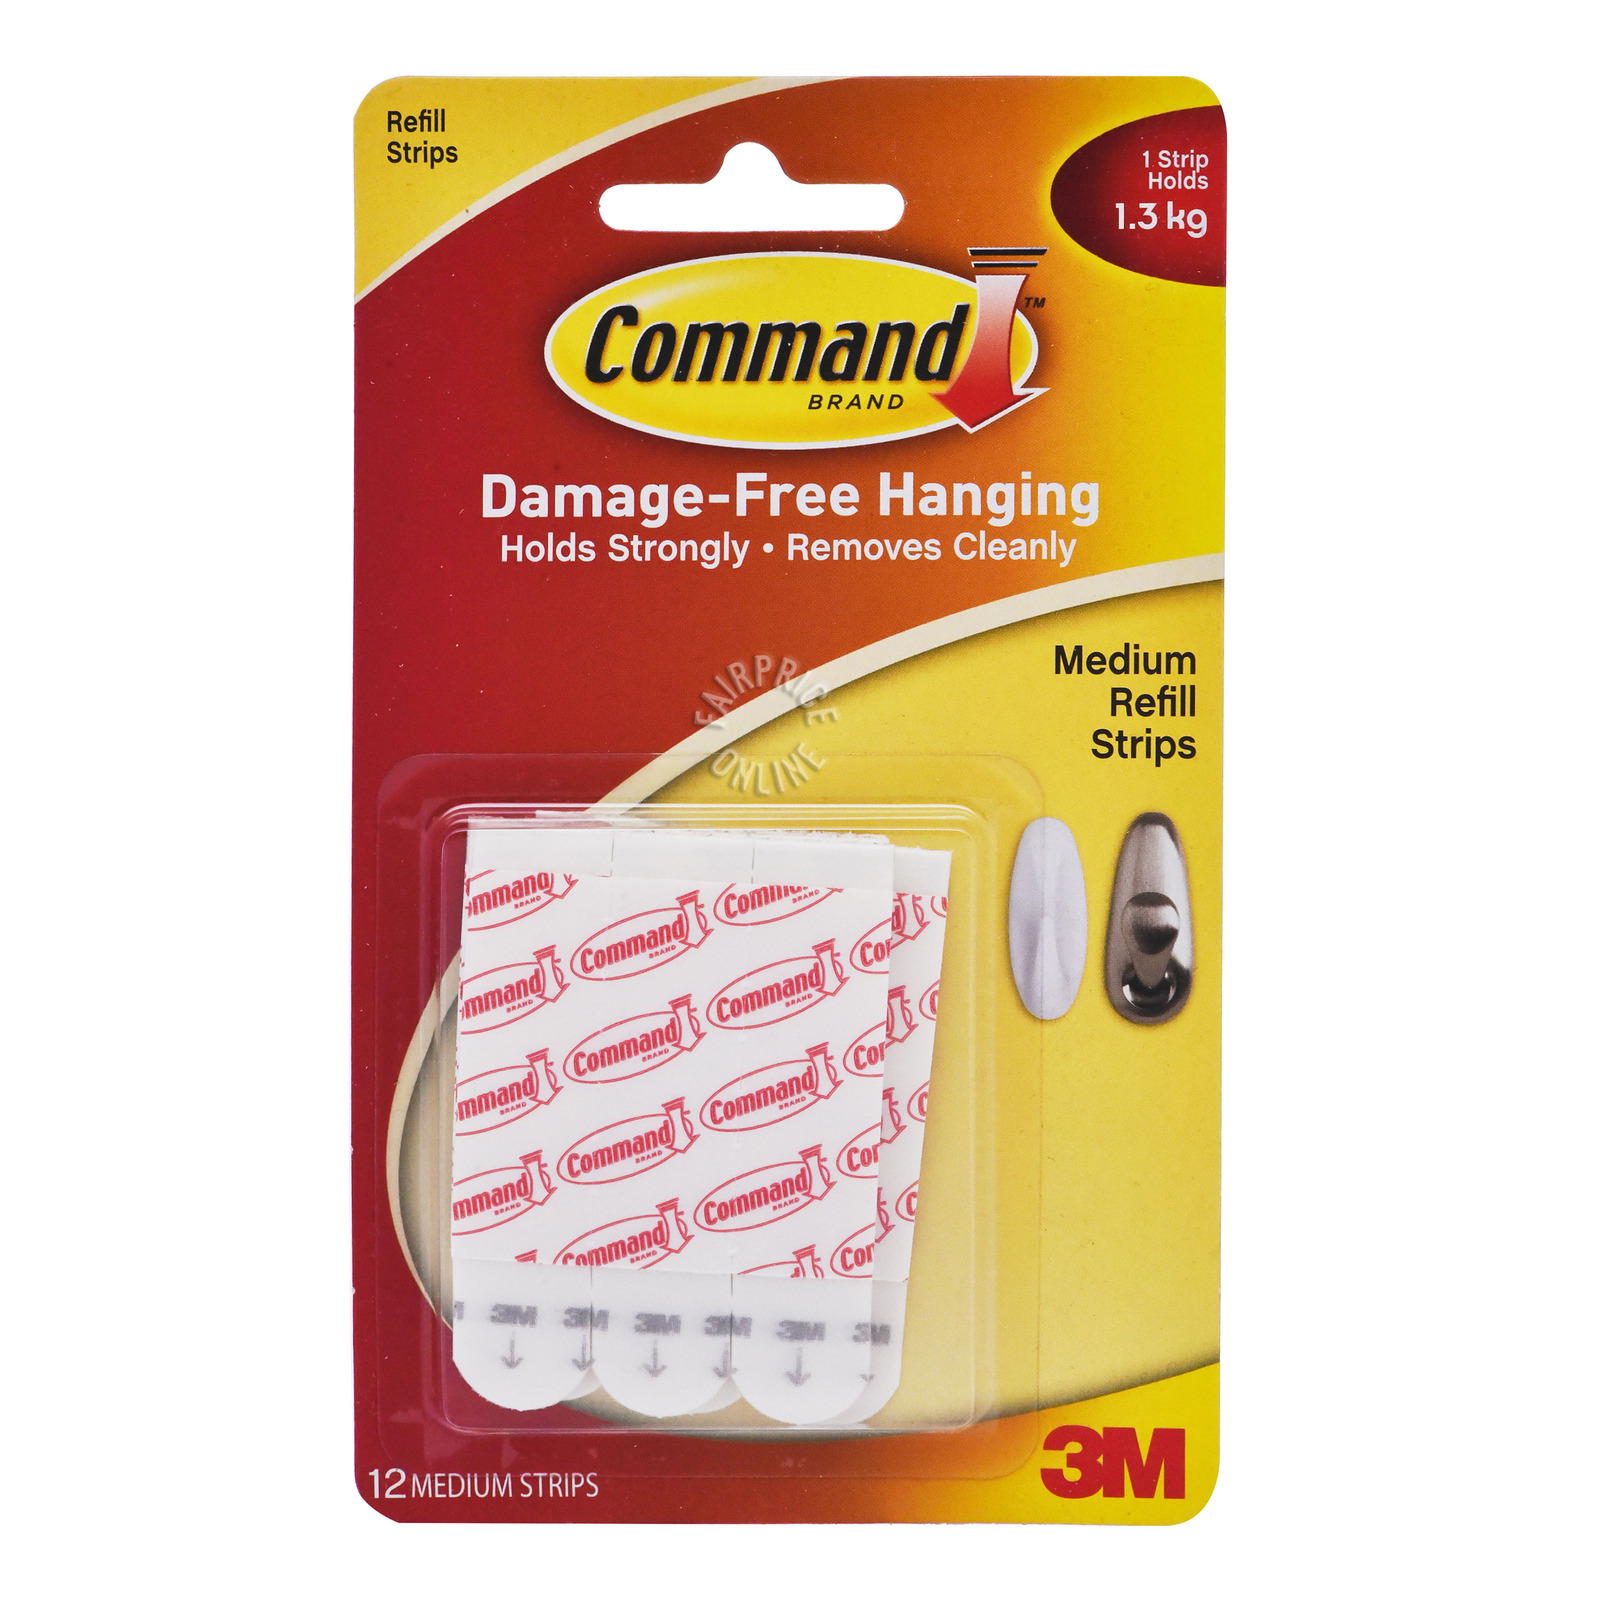 3M Command Refill Strips - Medium